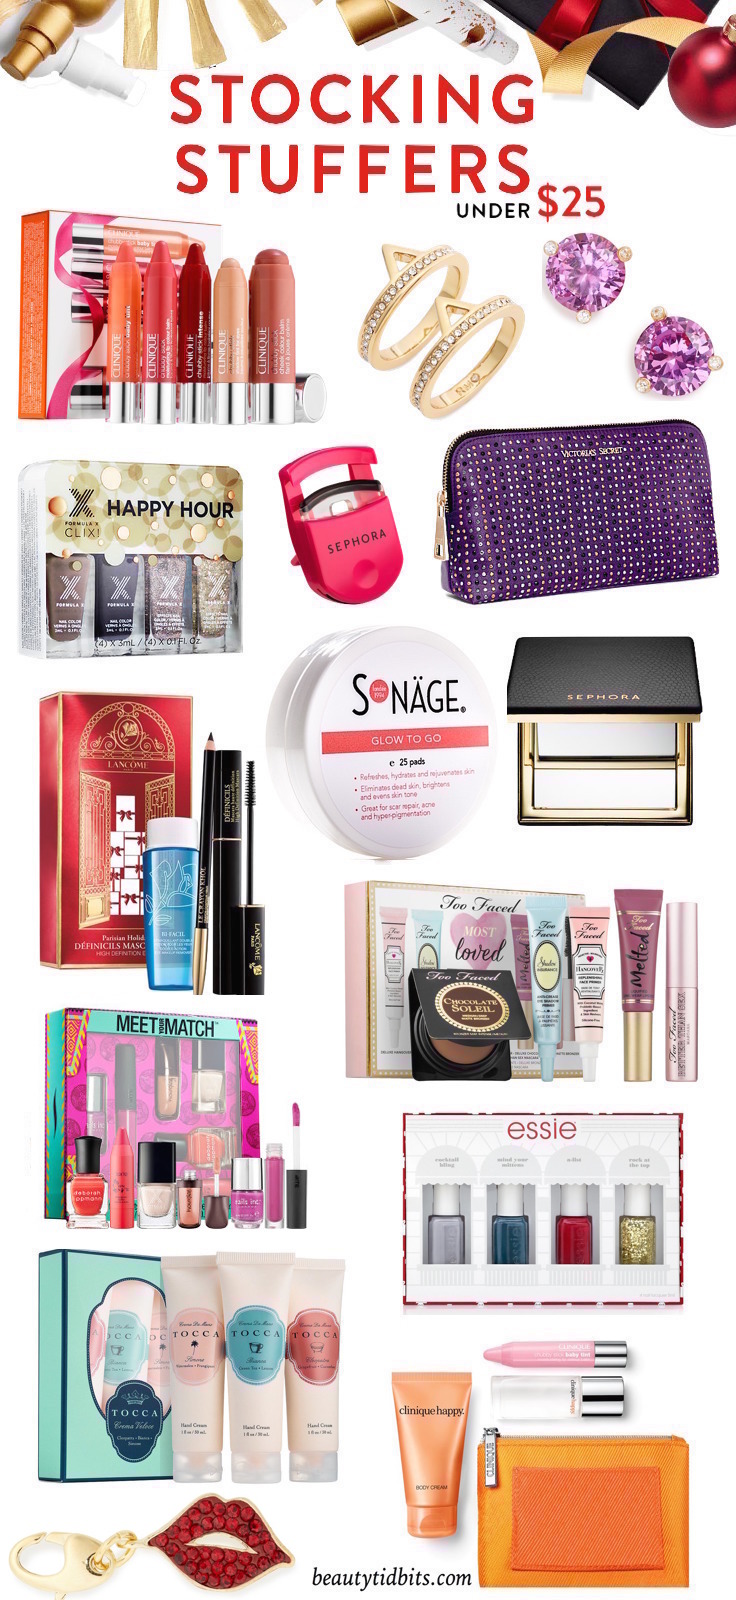 Need some ideas to stuff those stockings? Here are 25 chic beauty & style picks under $  25 that are sure to please!